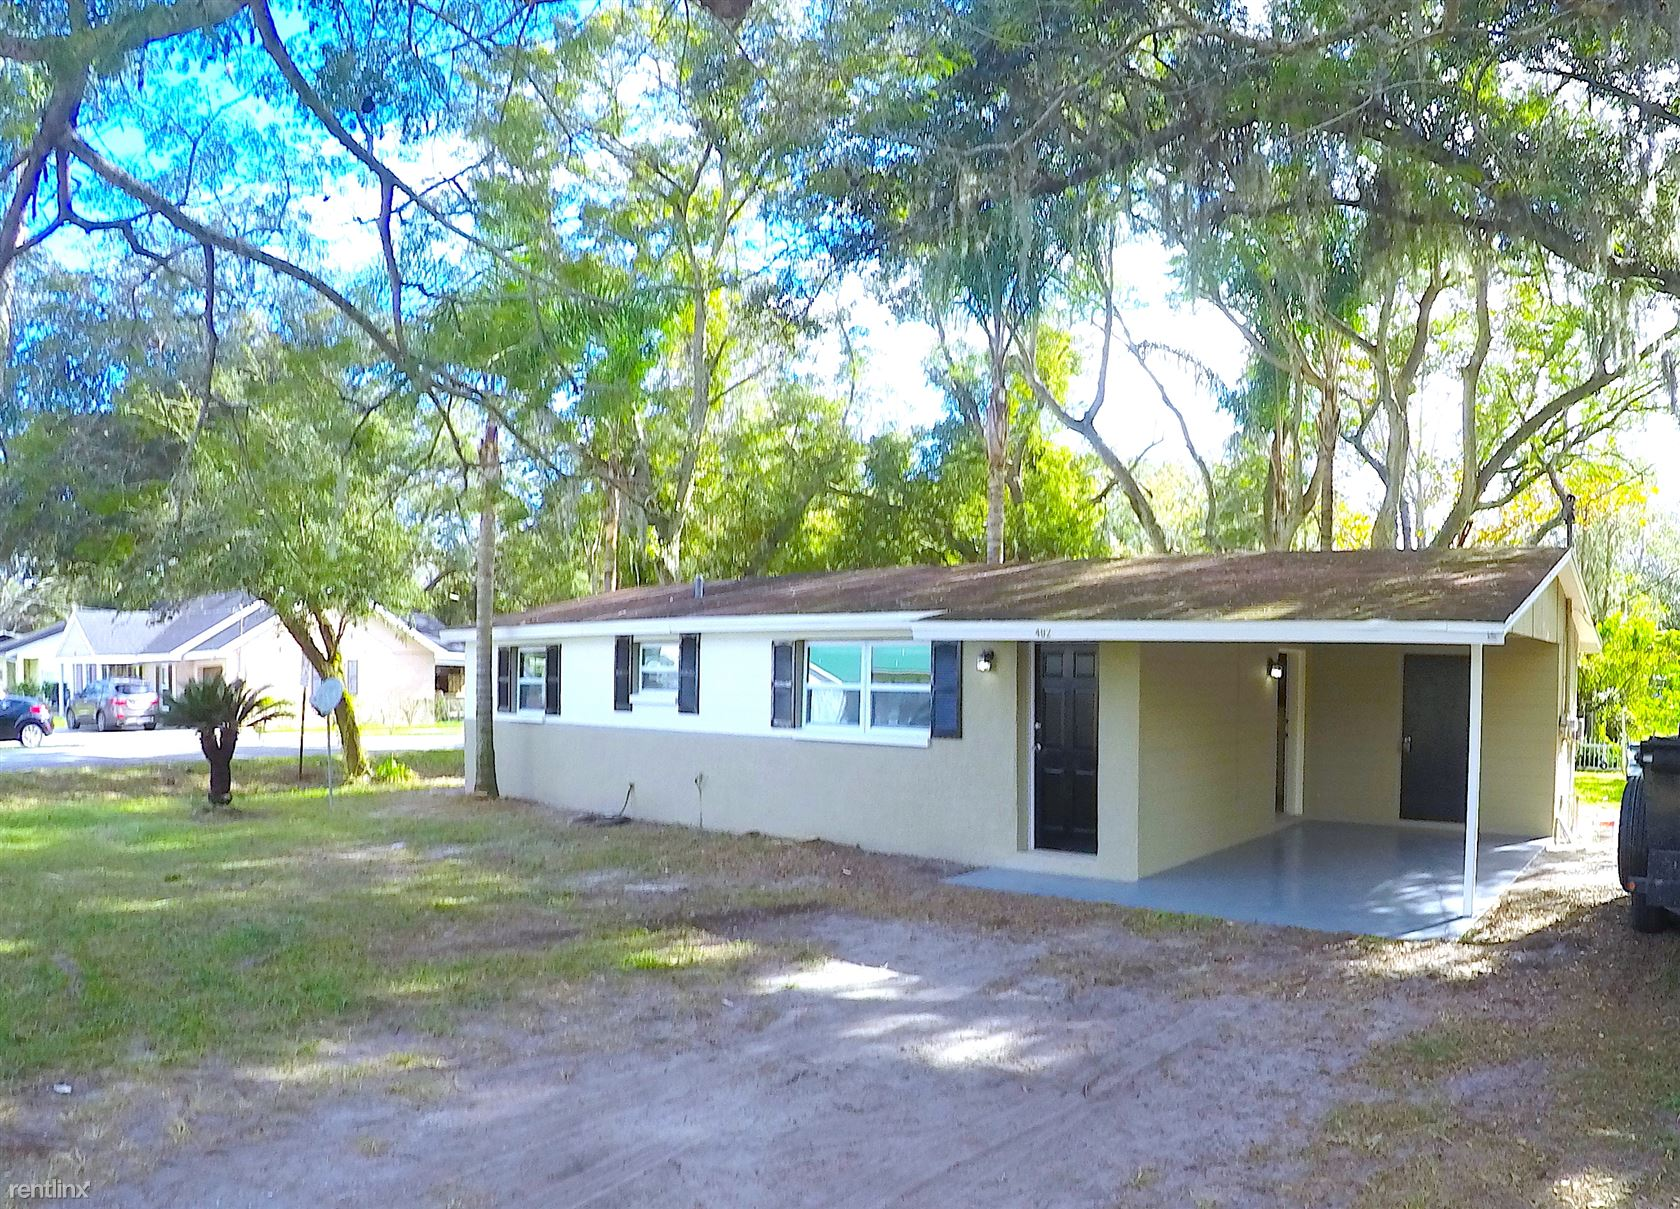 402 W Lutz Lake Fern Rd, Lutz, FL - $1,395